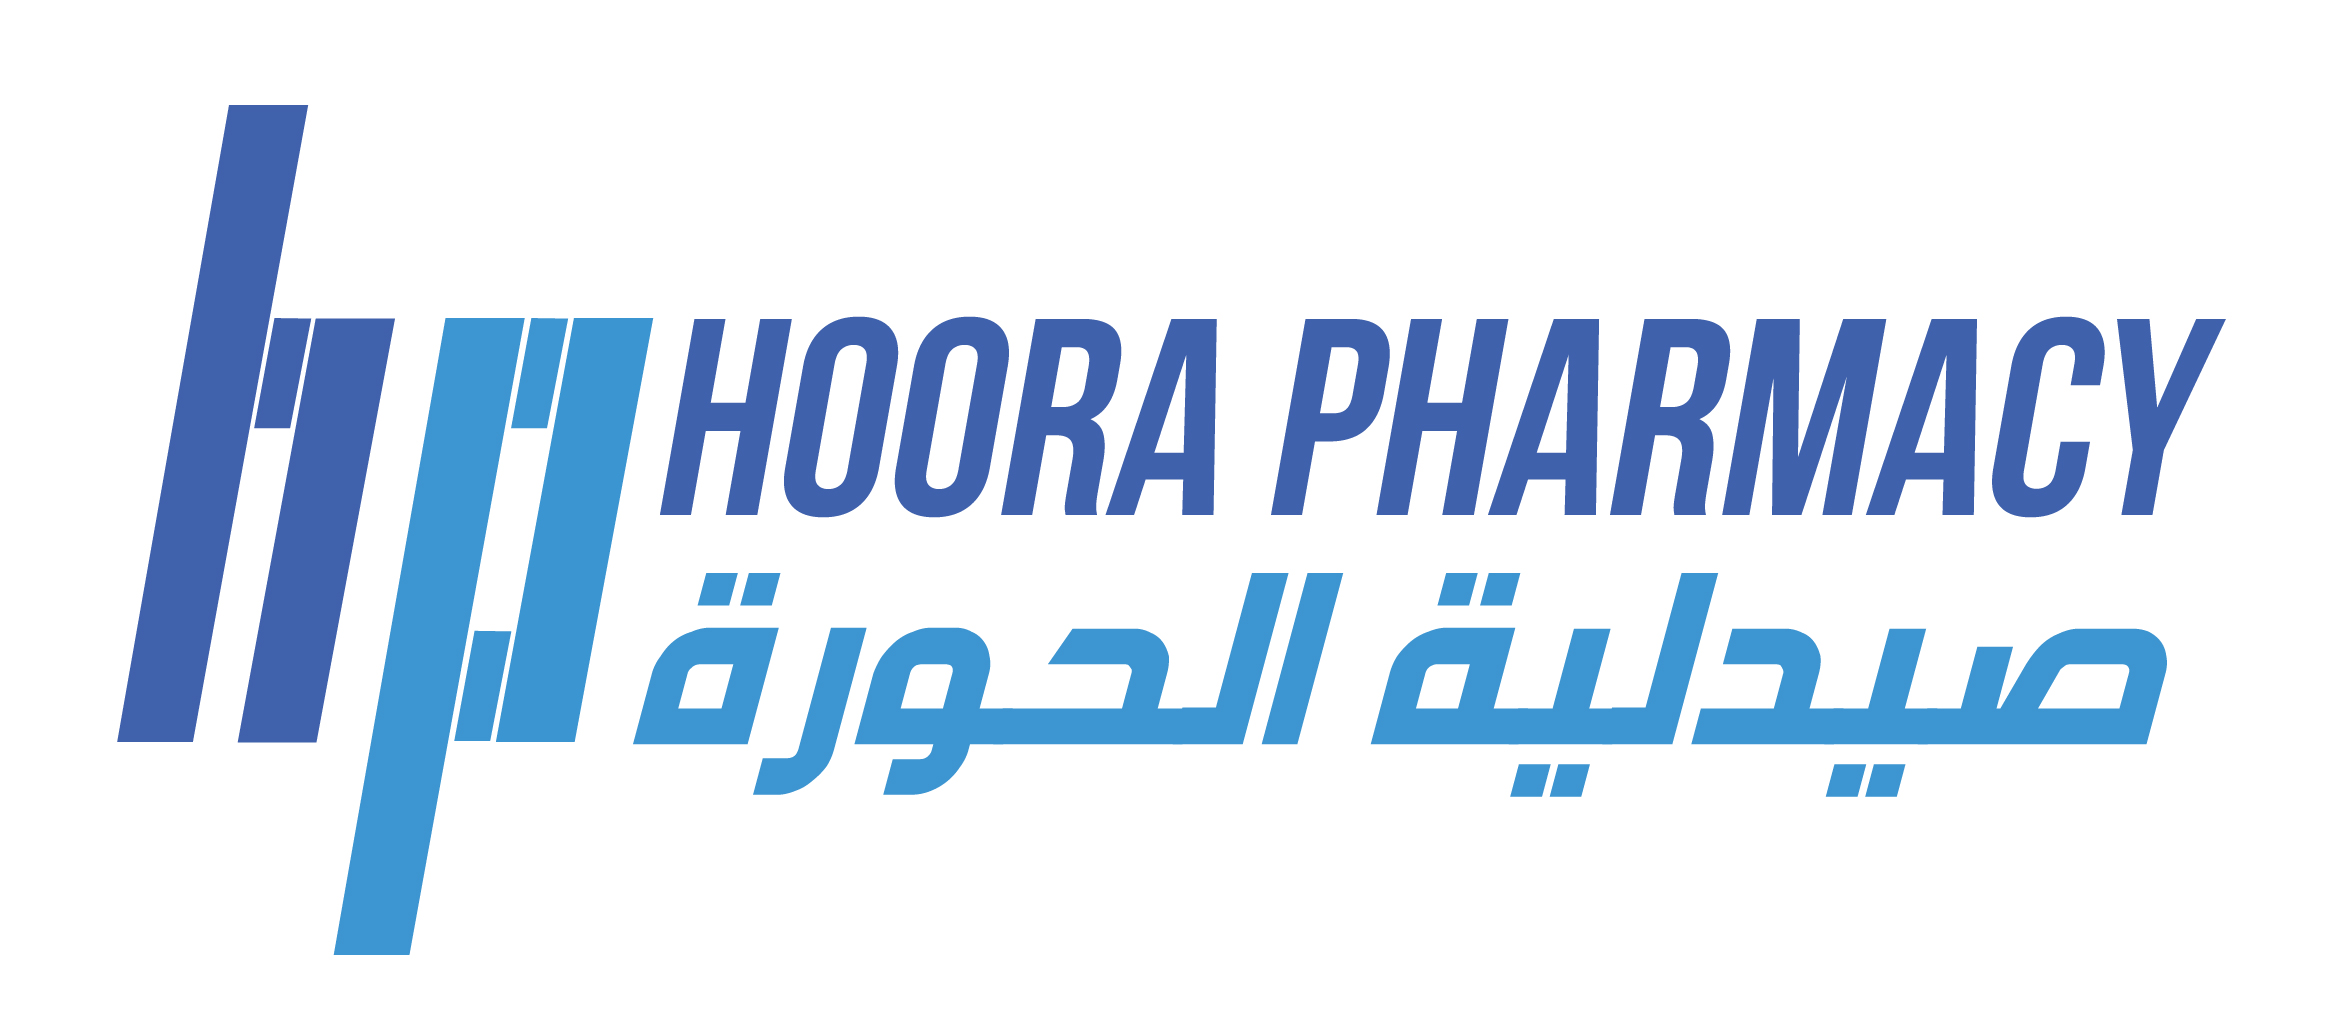 Hoora Pharmacy